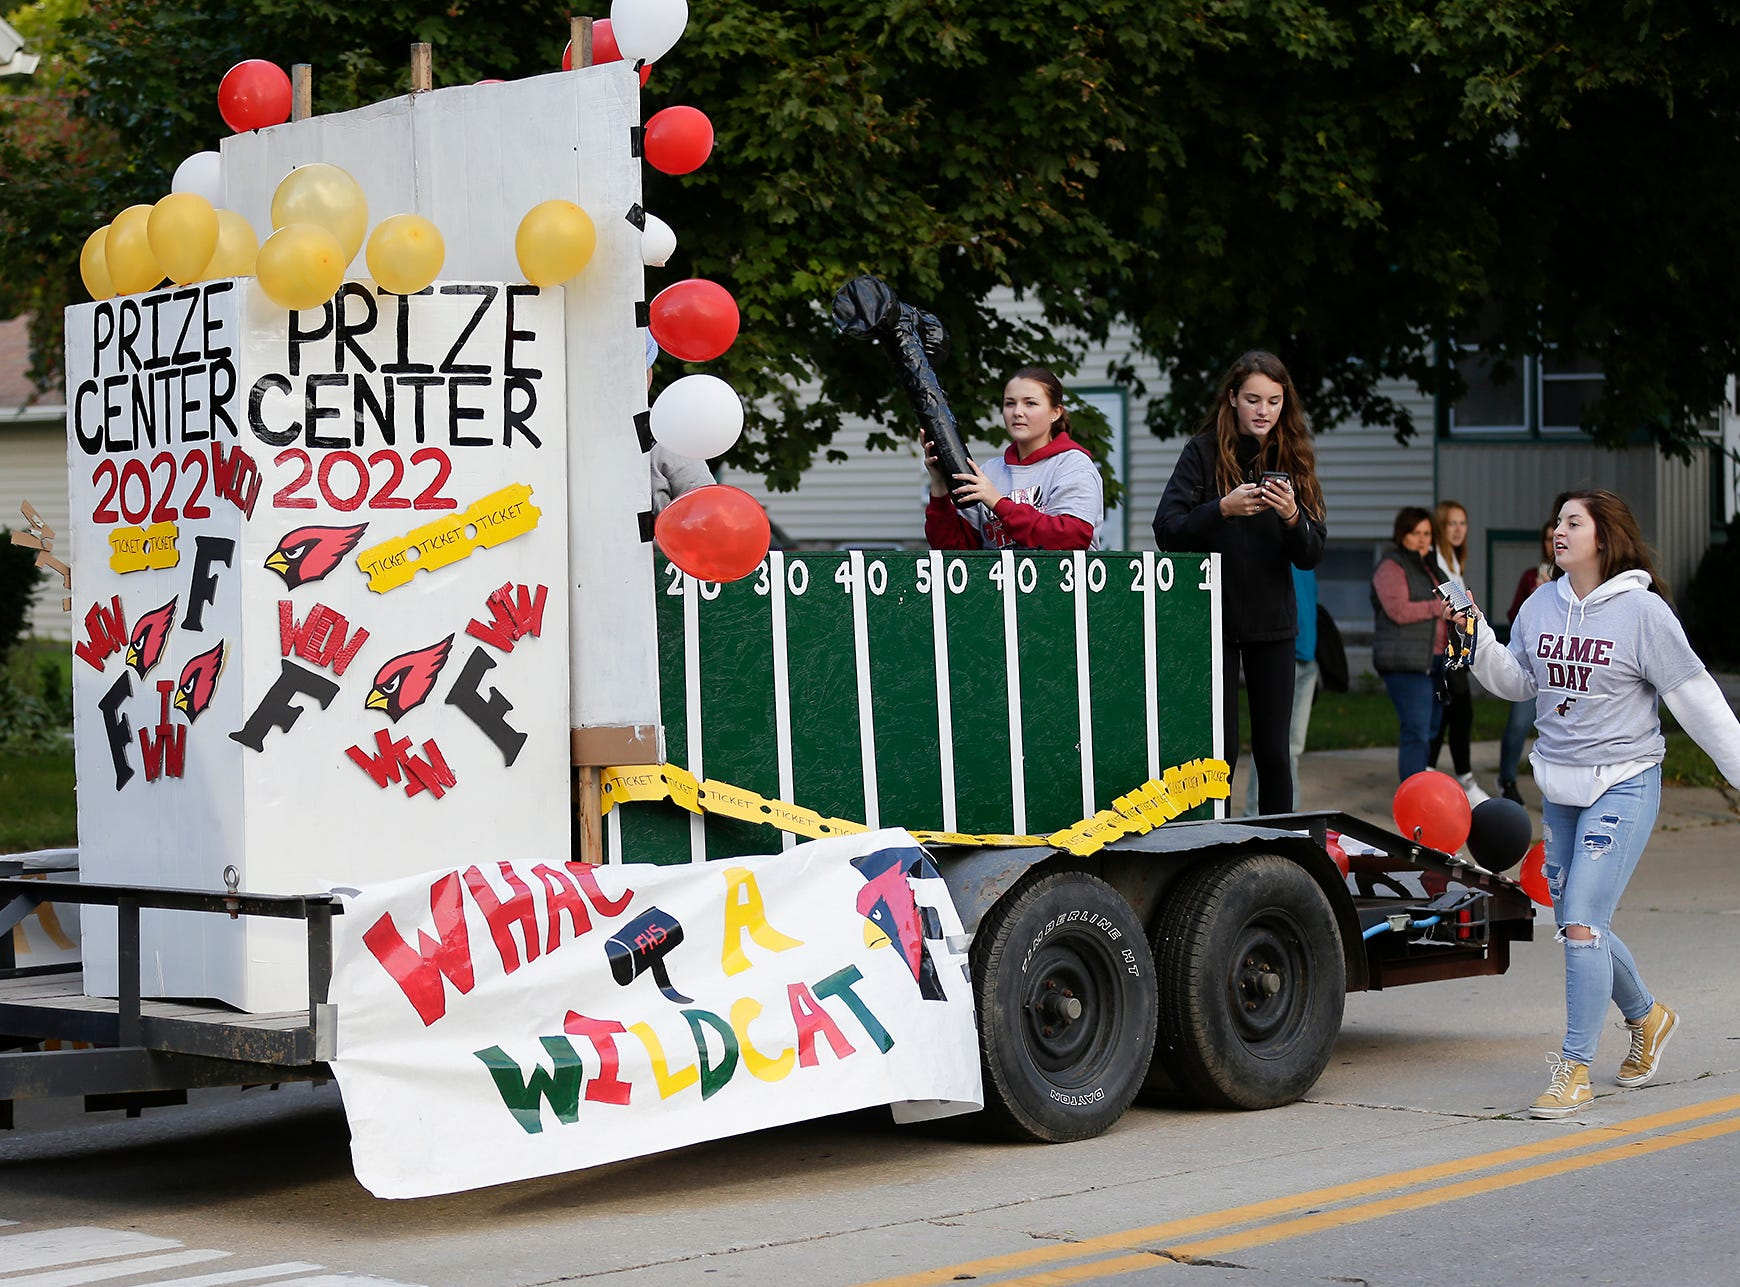 The Fond du Lac High School class of 2022 rode in the Fond du Lac High School football homecoming parade Friday, Sept. 28, 2018, which went down portions of Martin Avenue and Ninth Street in Fond du Lac, Wisconsin.